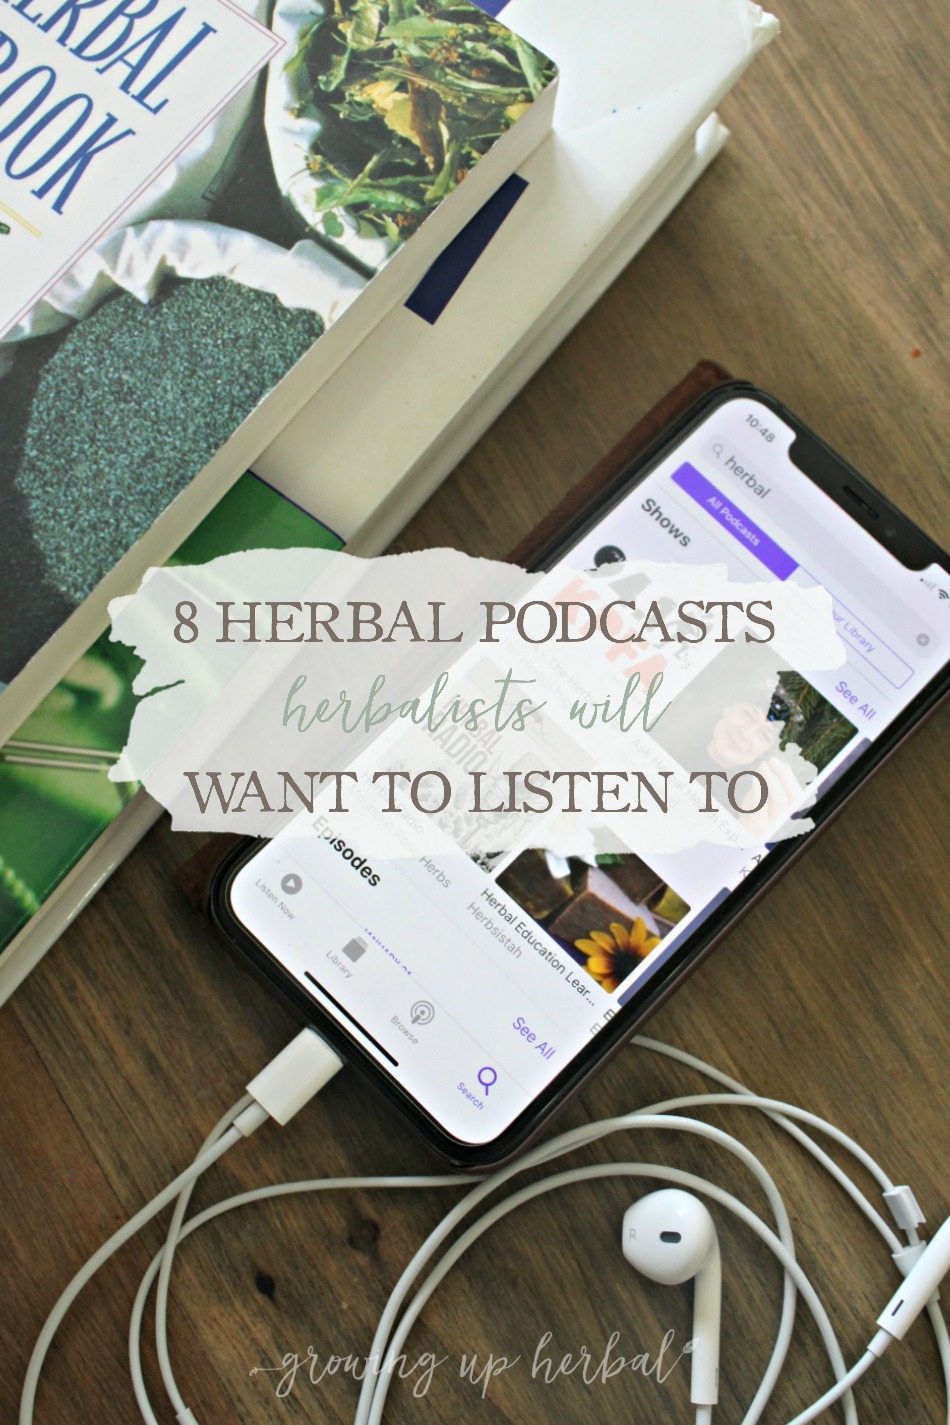 8 Herbal Podcasts Herbalists Will Want To Listen To | Growing Up Herbal | Looking for herbal podcasts to listen too? Here are 8 that can benefit your herbal education!